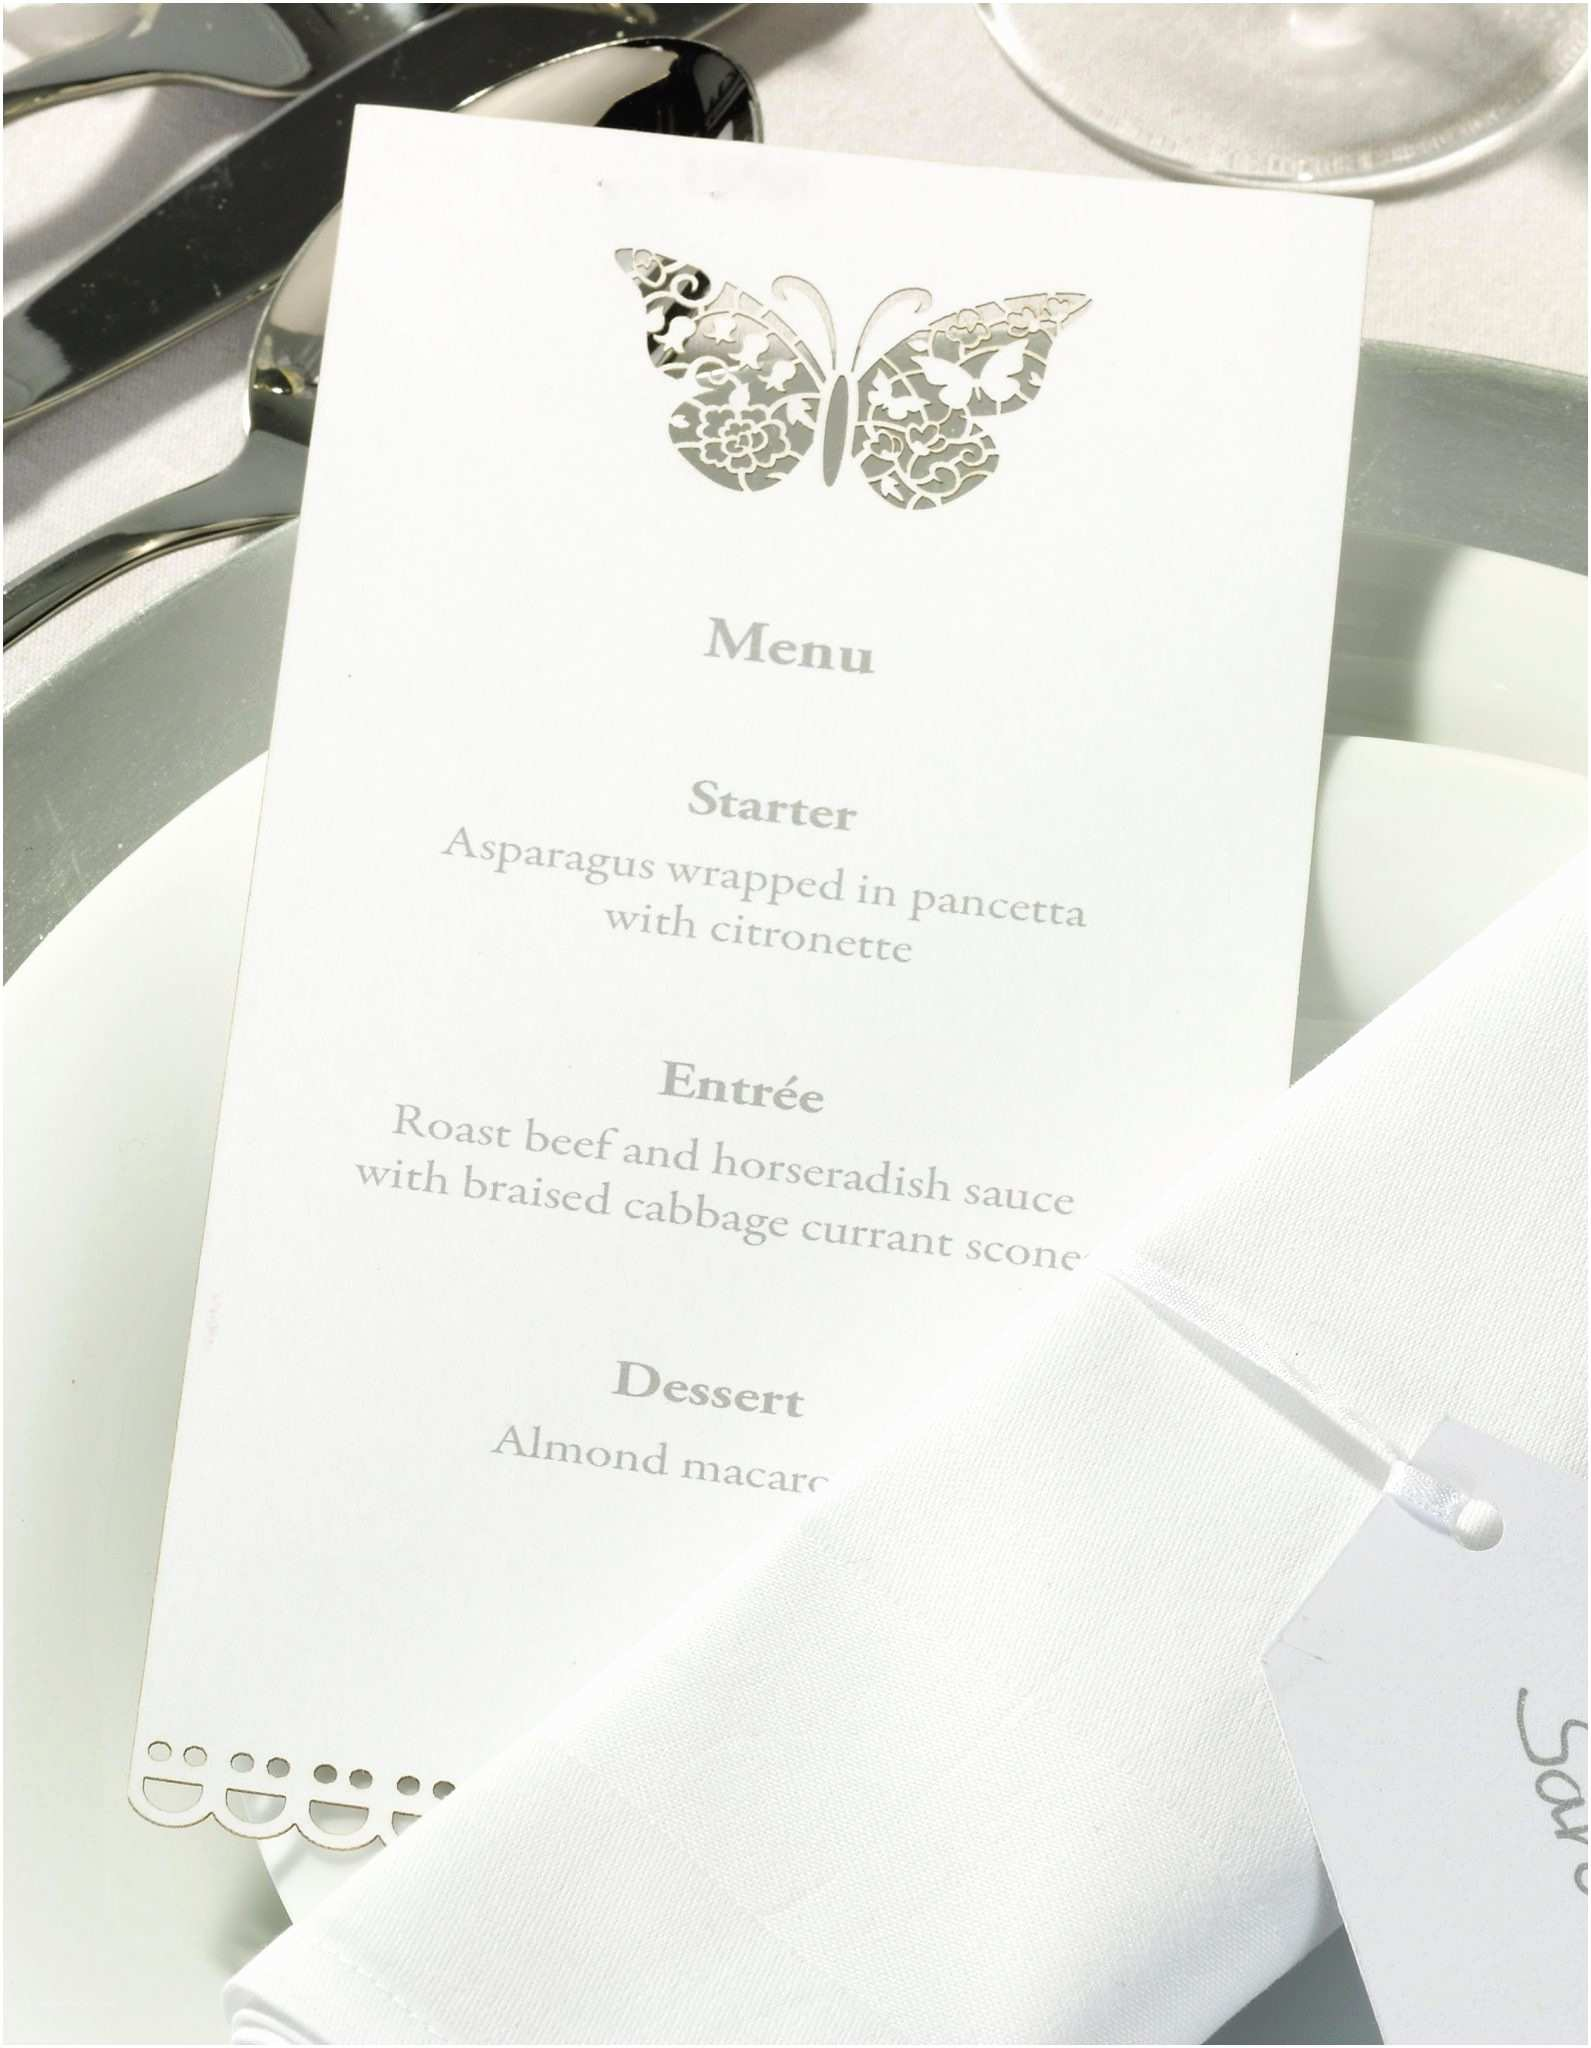 Best Printer for Wedding Invitations Wedding Invitation Printers Party for Kids Ideas and